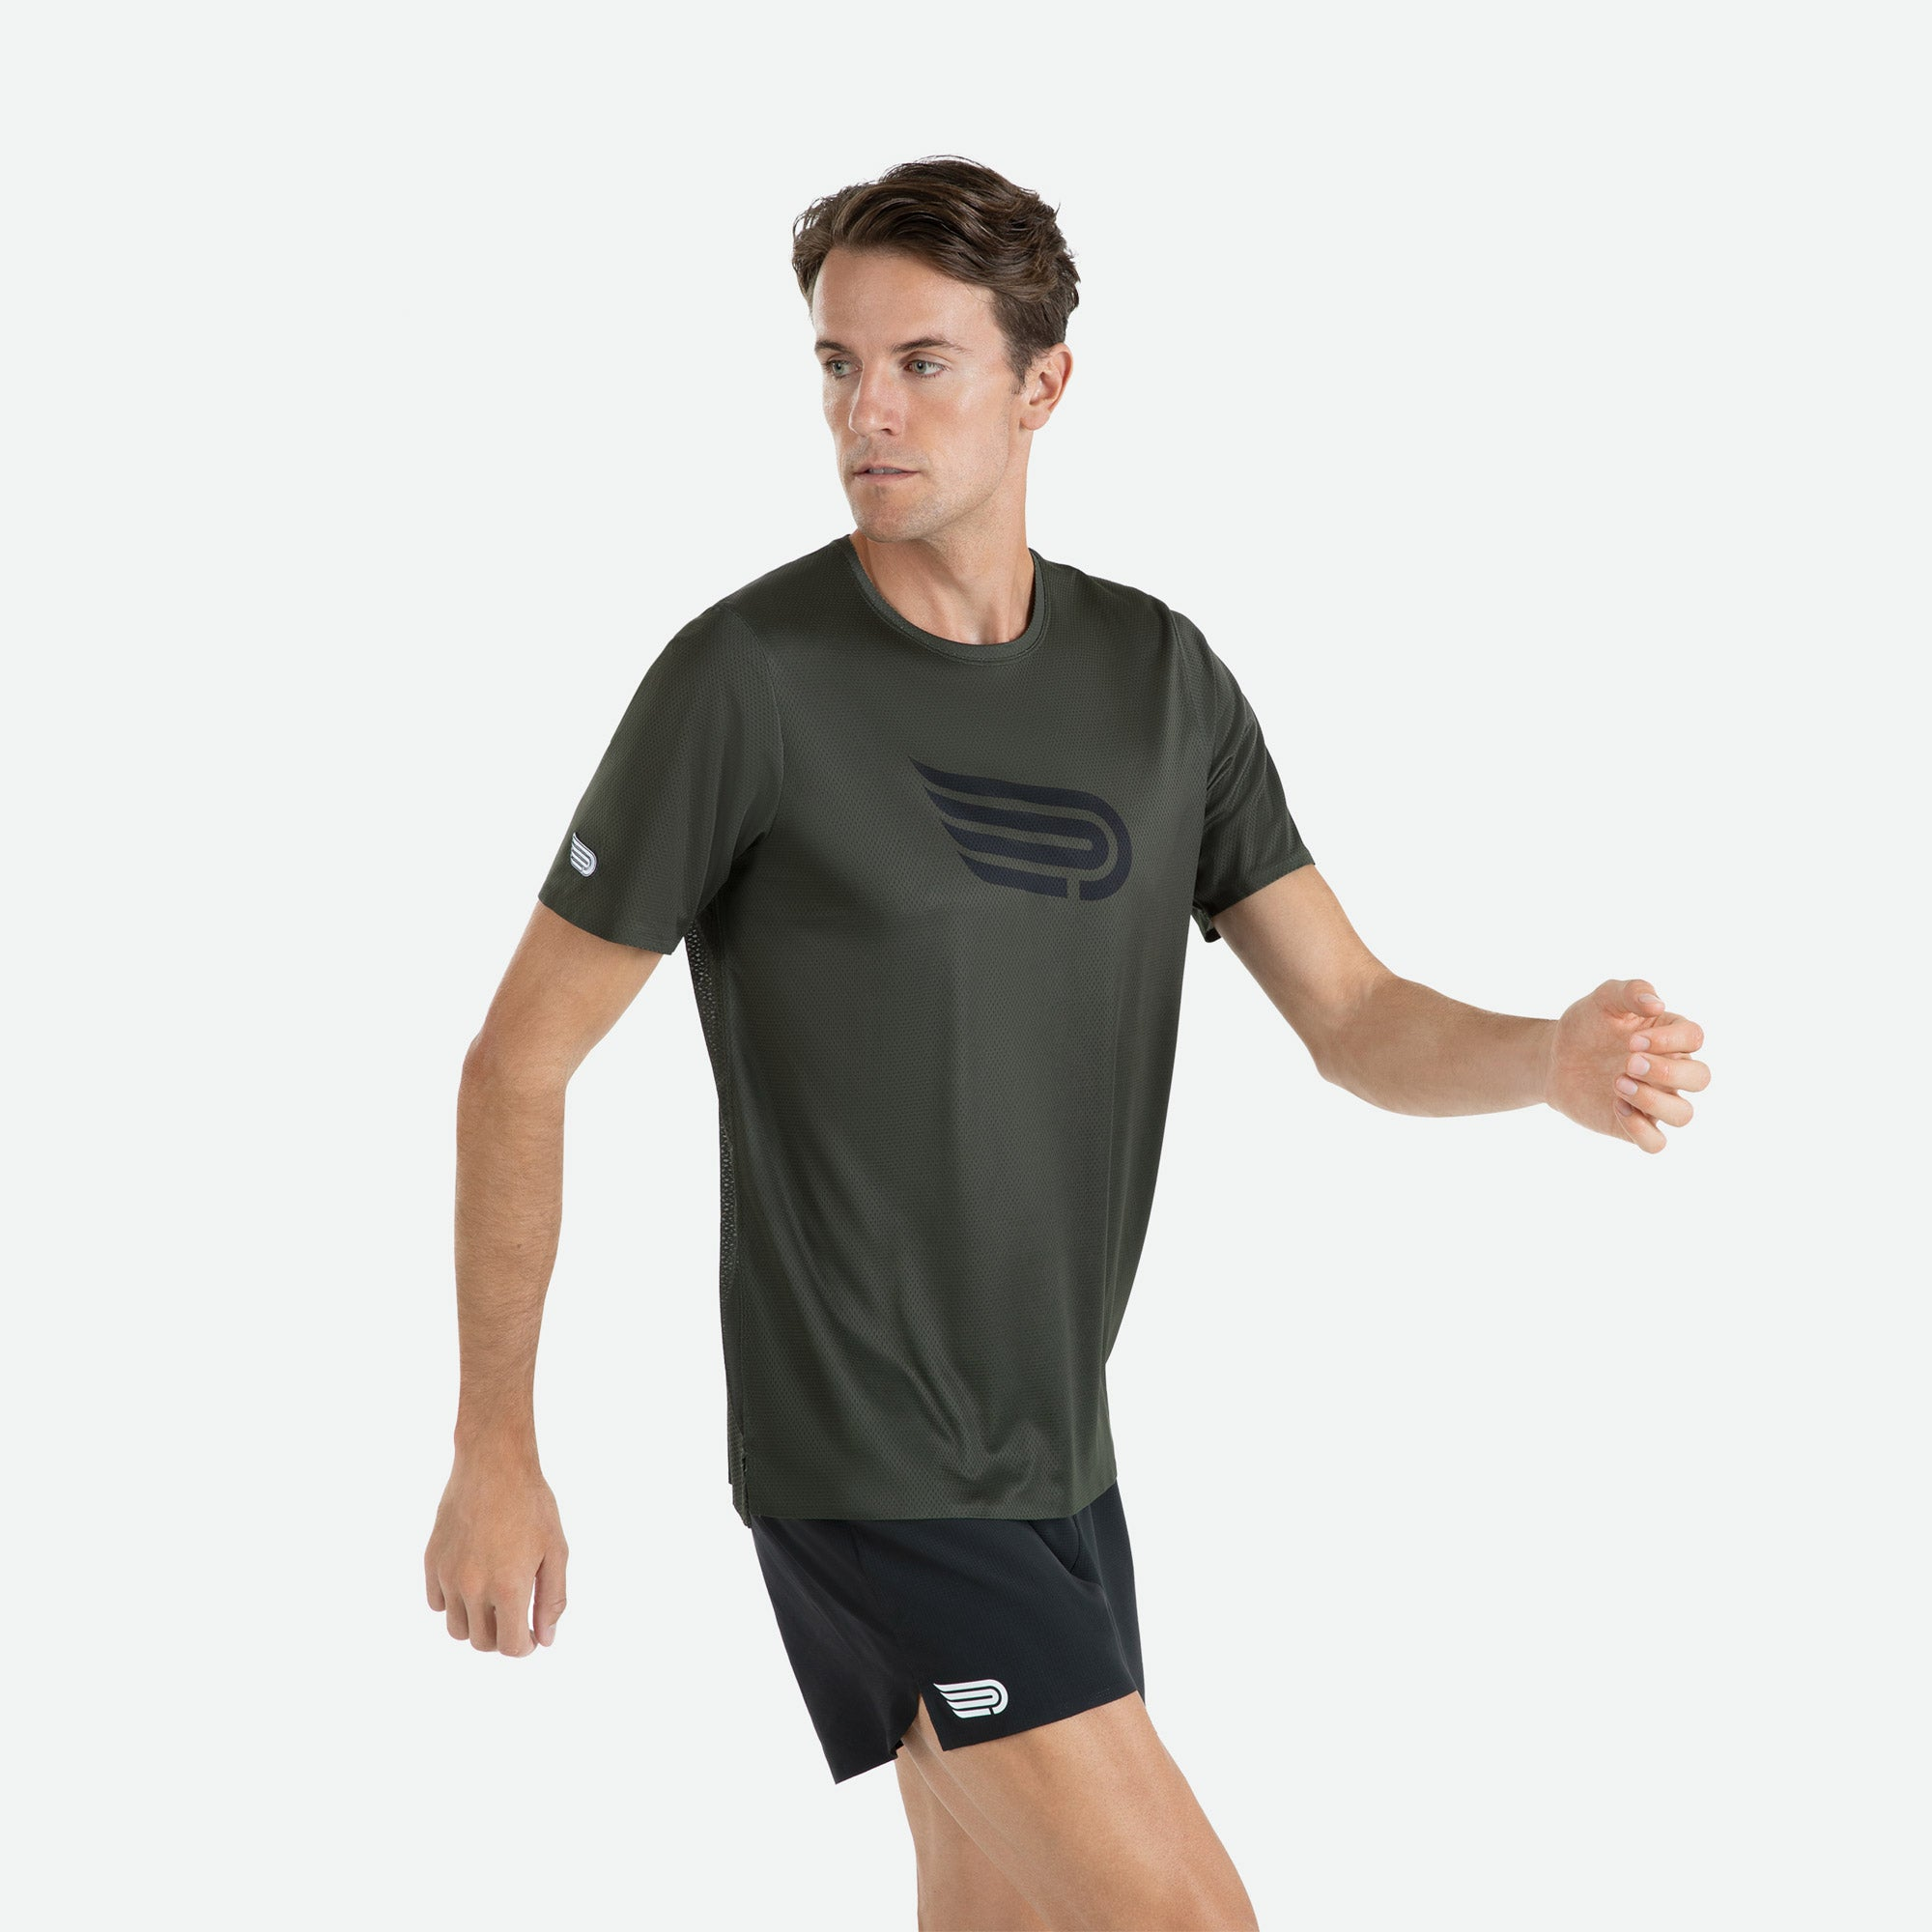 Engineered 3D vent mesh structure for optimal ventilation on the back of our Pressio men's Ārahi dark green/black short sleeve t-shirt.